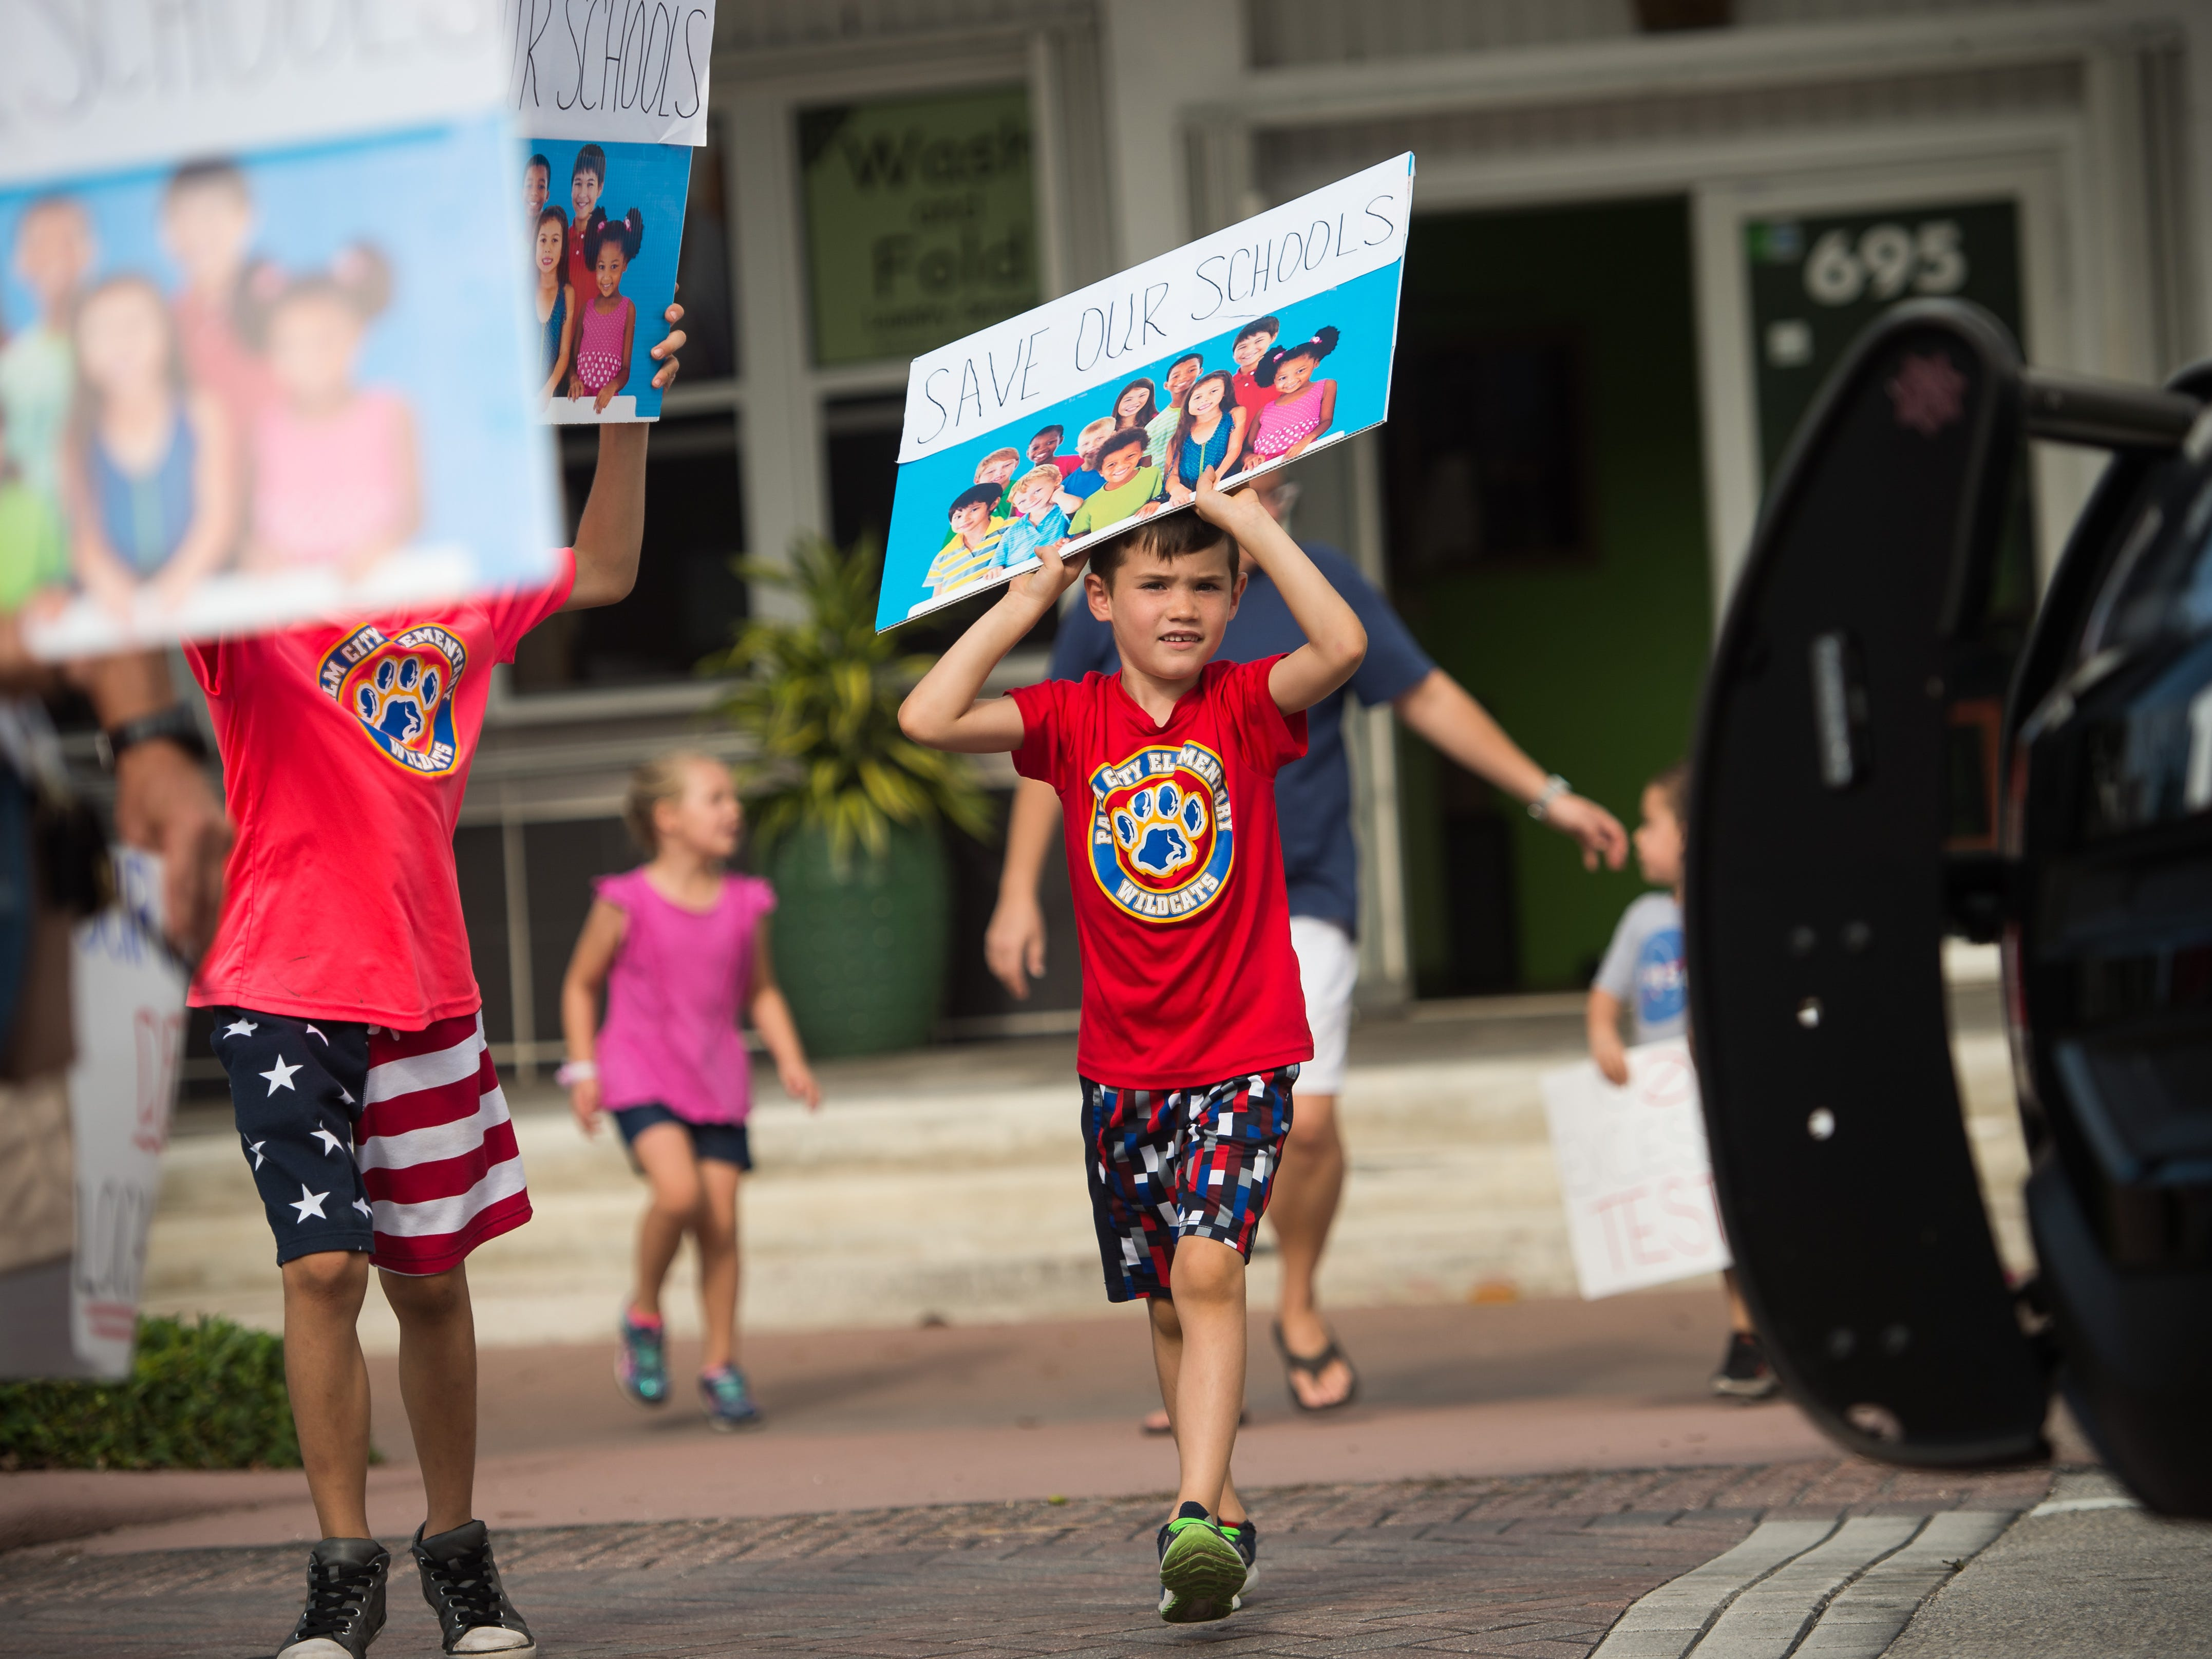 "Beckett Davis, 6, of Palm City, crosses Colorado Avenue while Stuart police direct traffic during a march in support of reforms to Florida's public education system Wednesday, May 15, 2019, in Stuart. His mother, Corinne Davis, said the family moved to Martin County for the quality of schools. ""I just want to make sure their future is set up in a way that's, you know, really positive, and that it's a good experience,"" she said. The event was organized by the Facebook group page ""Reconstruct-ED: A Message to Governor DeSantis,"" which lists over-testing and low teacher pay among its concerns."